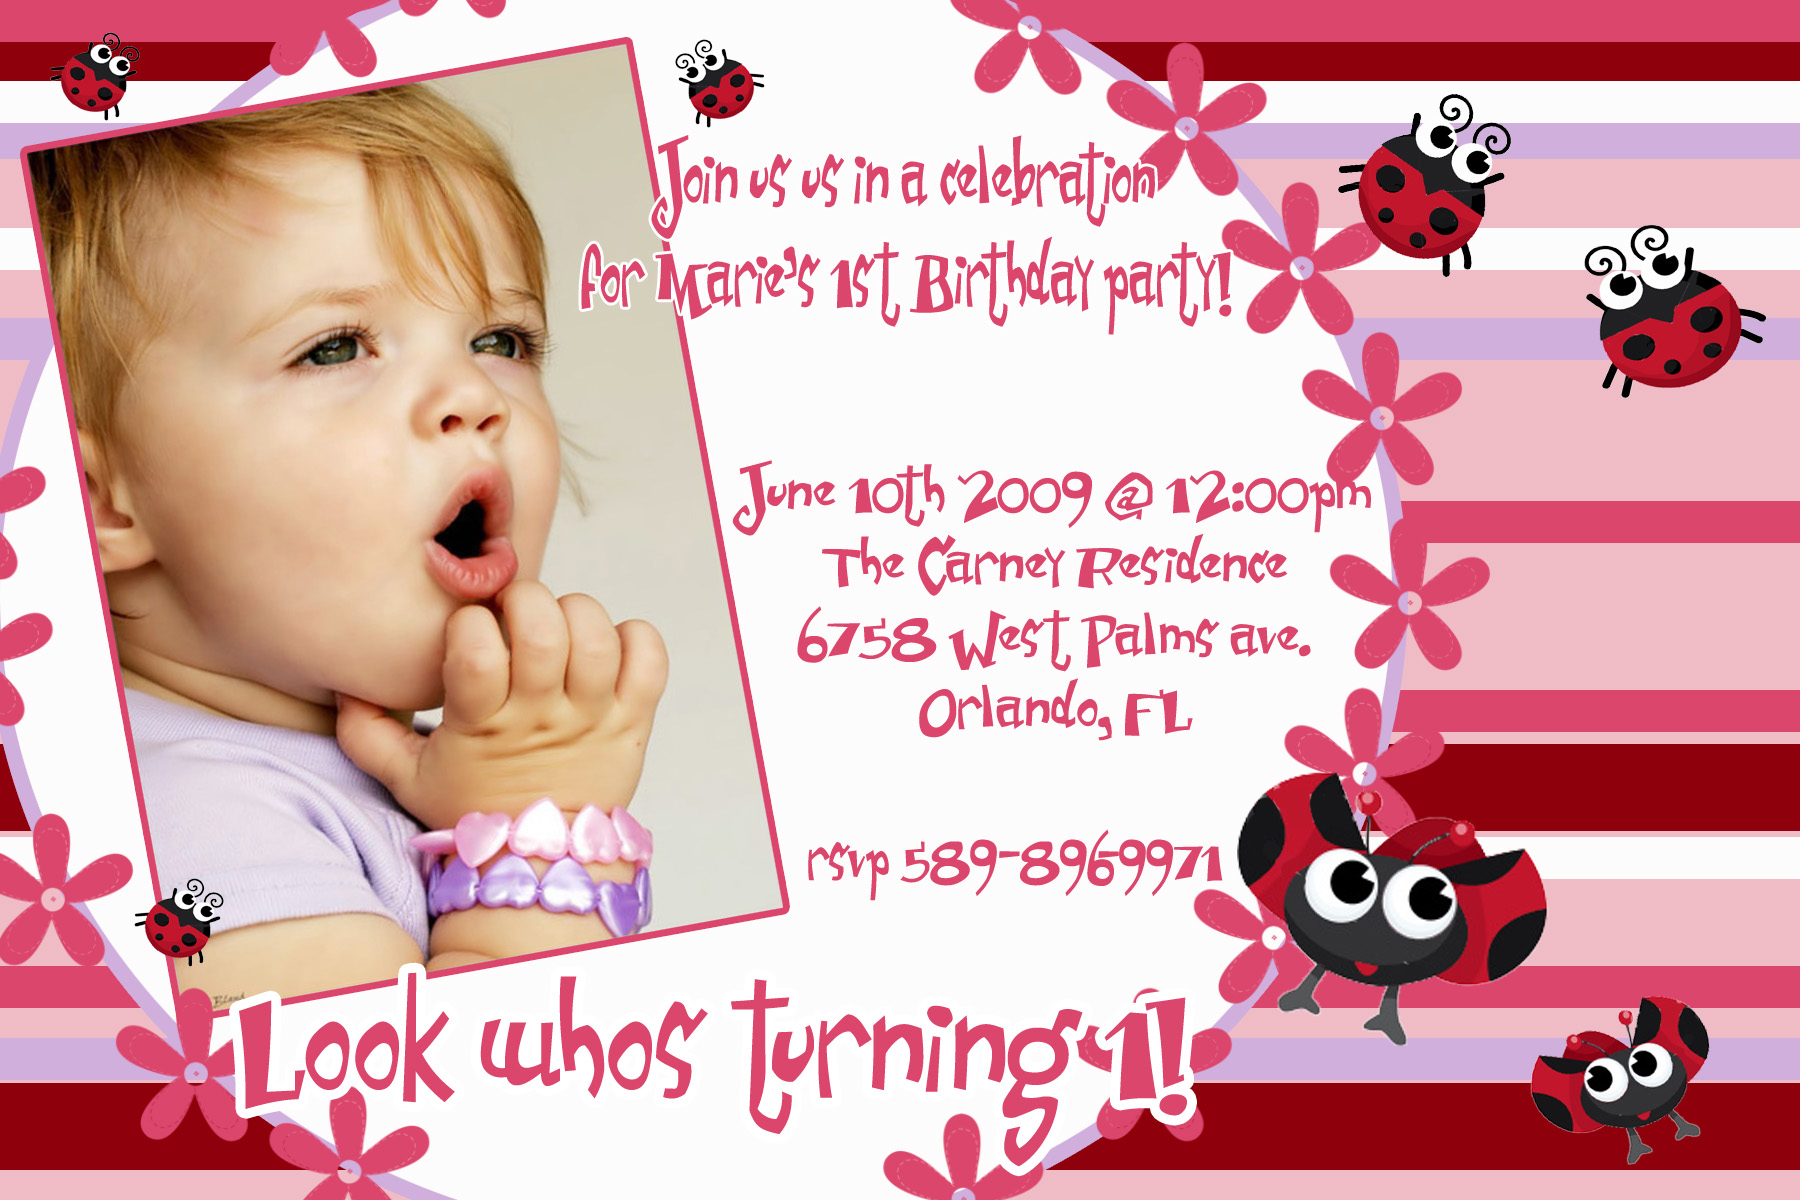 birthday invitation card design free ; baby-birthday-invitation-card-free-cute-pattern-design-unique-red-colored-pink-combined-with-photo-birthday-invitation-cards